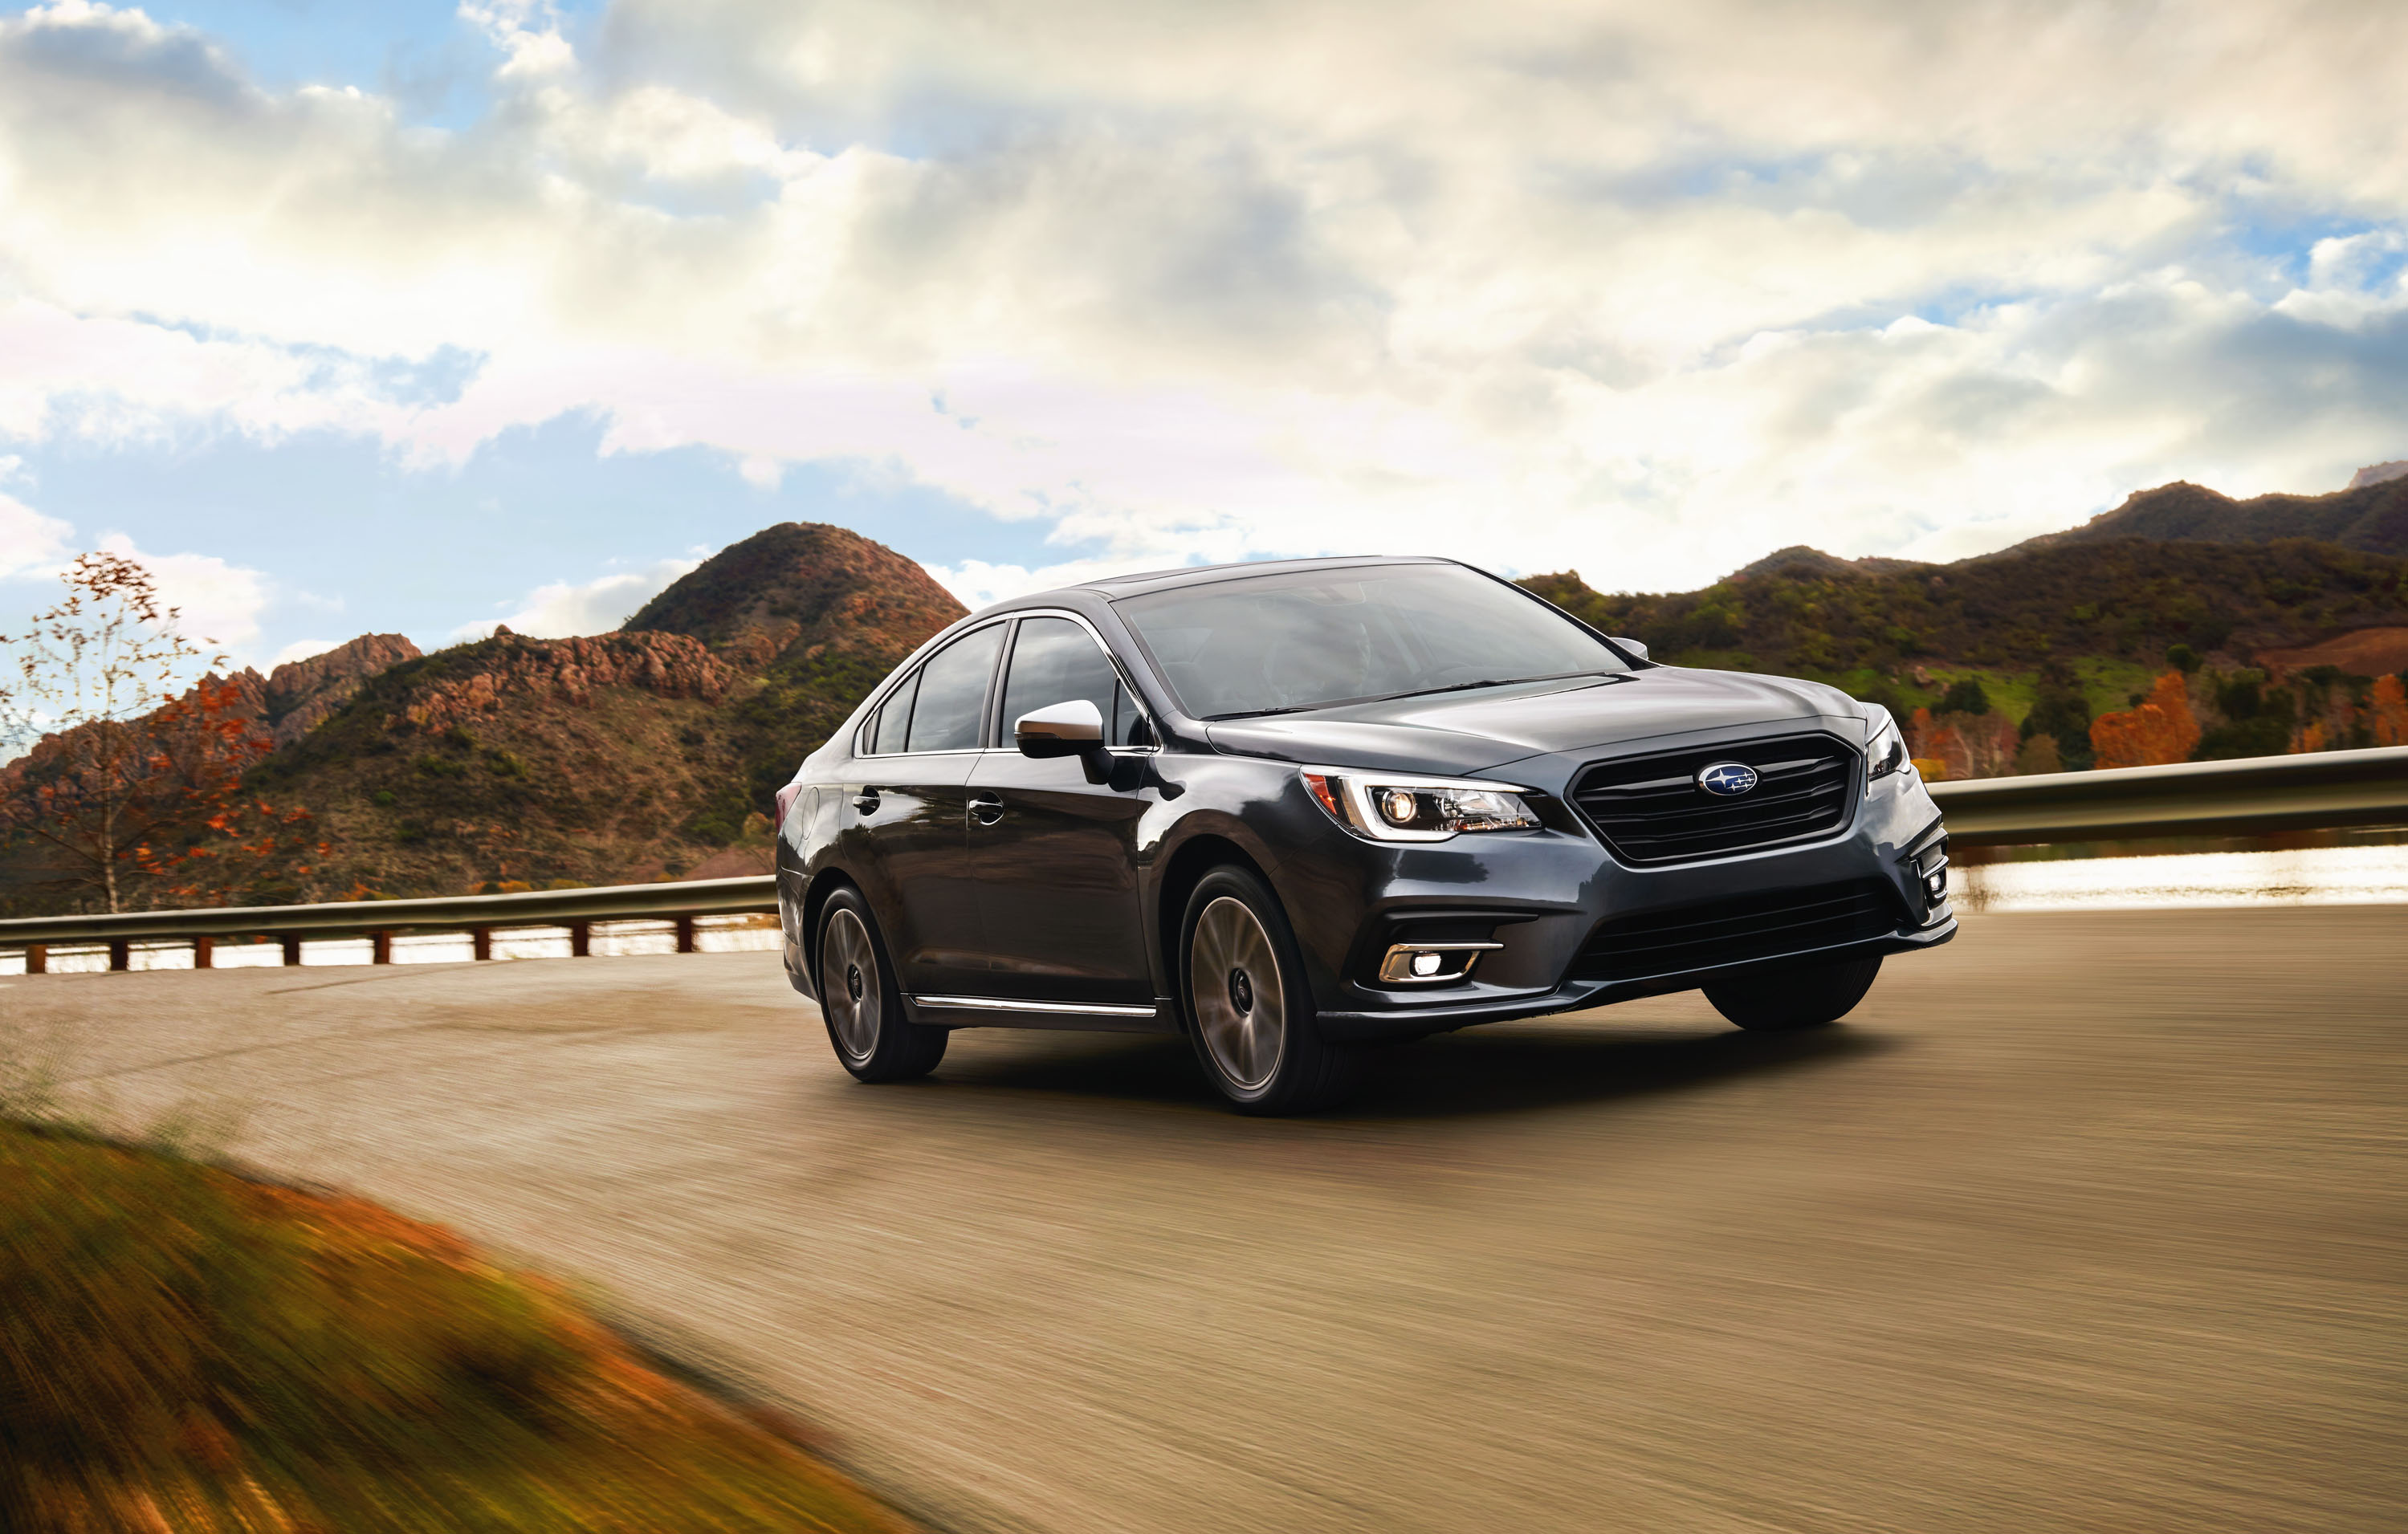 62 The Best The Subaru Legacy Gt 2019 Performance Review And Release Date